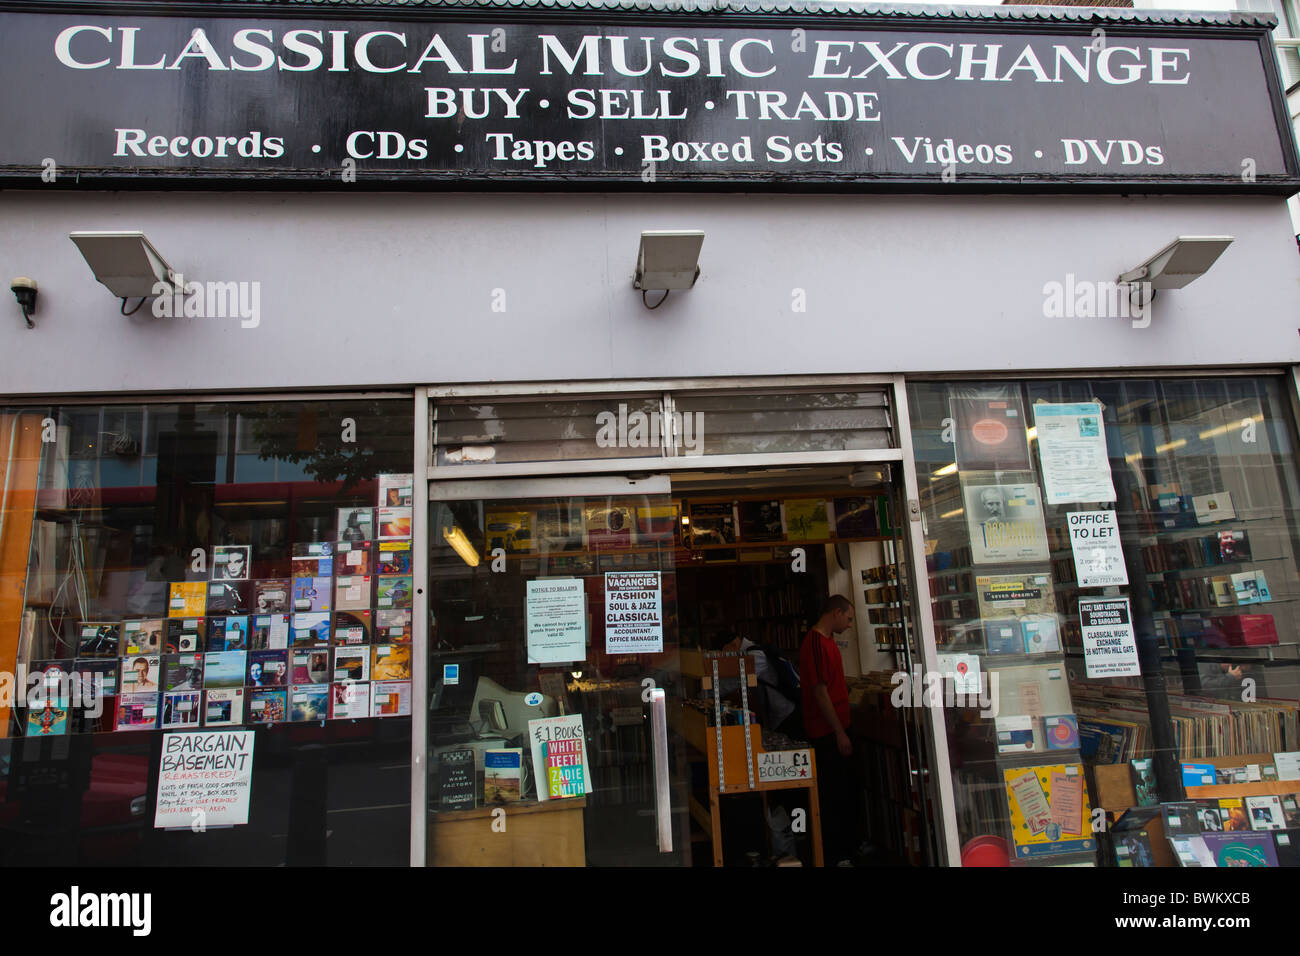 Records shop classical music cd shop - Stock Image